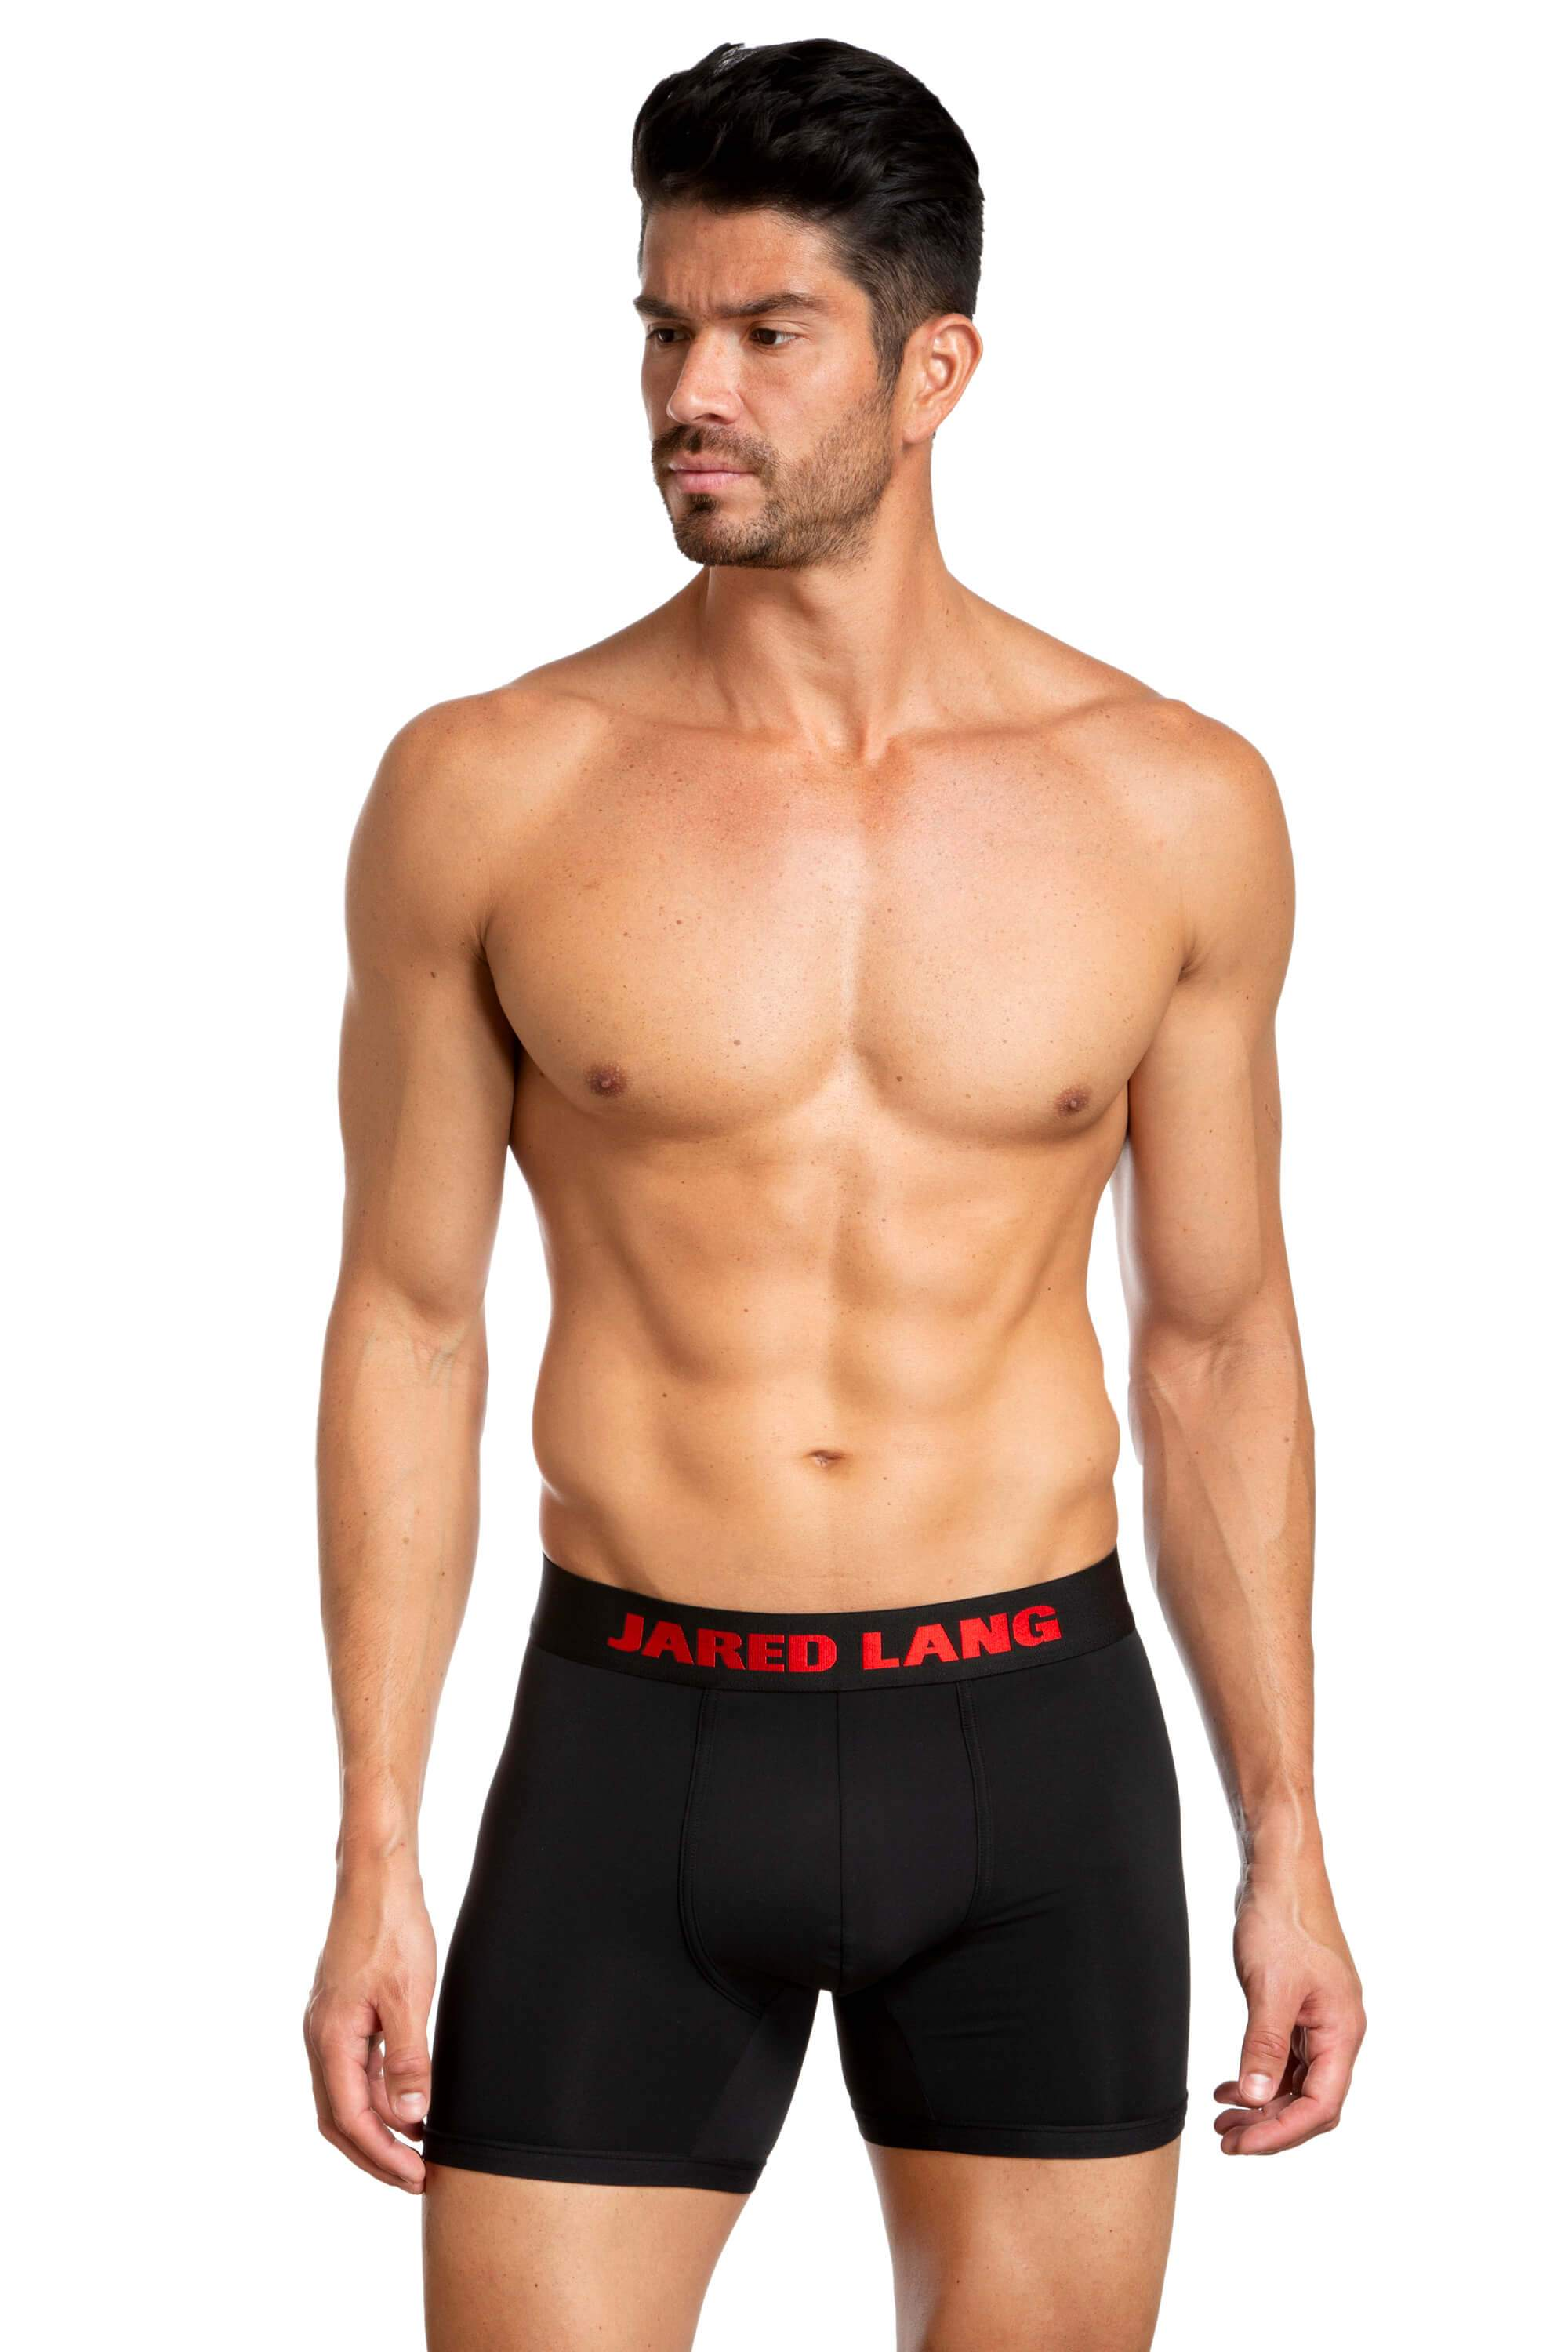 Pack of 3 Boxer Briefs for Men JLBX1-237 - Black and red front - Jared Lang